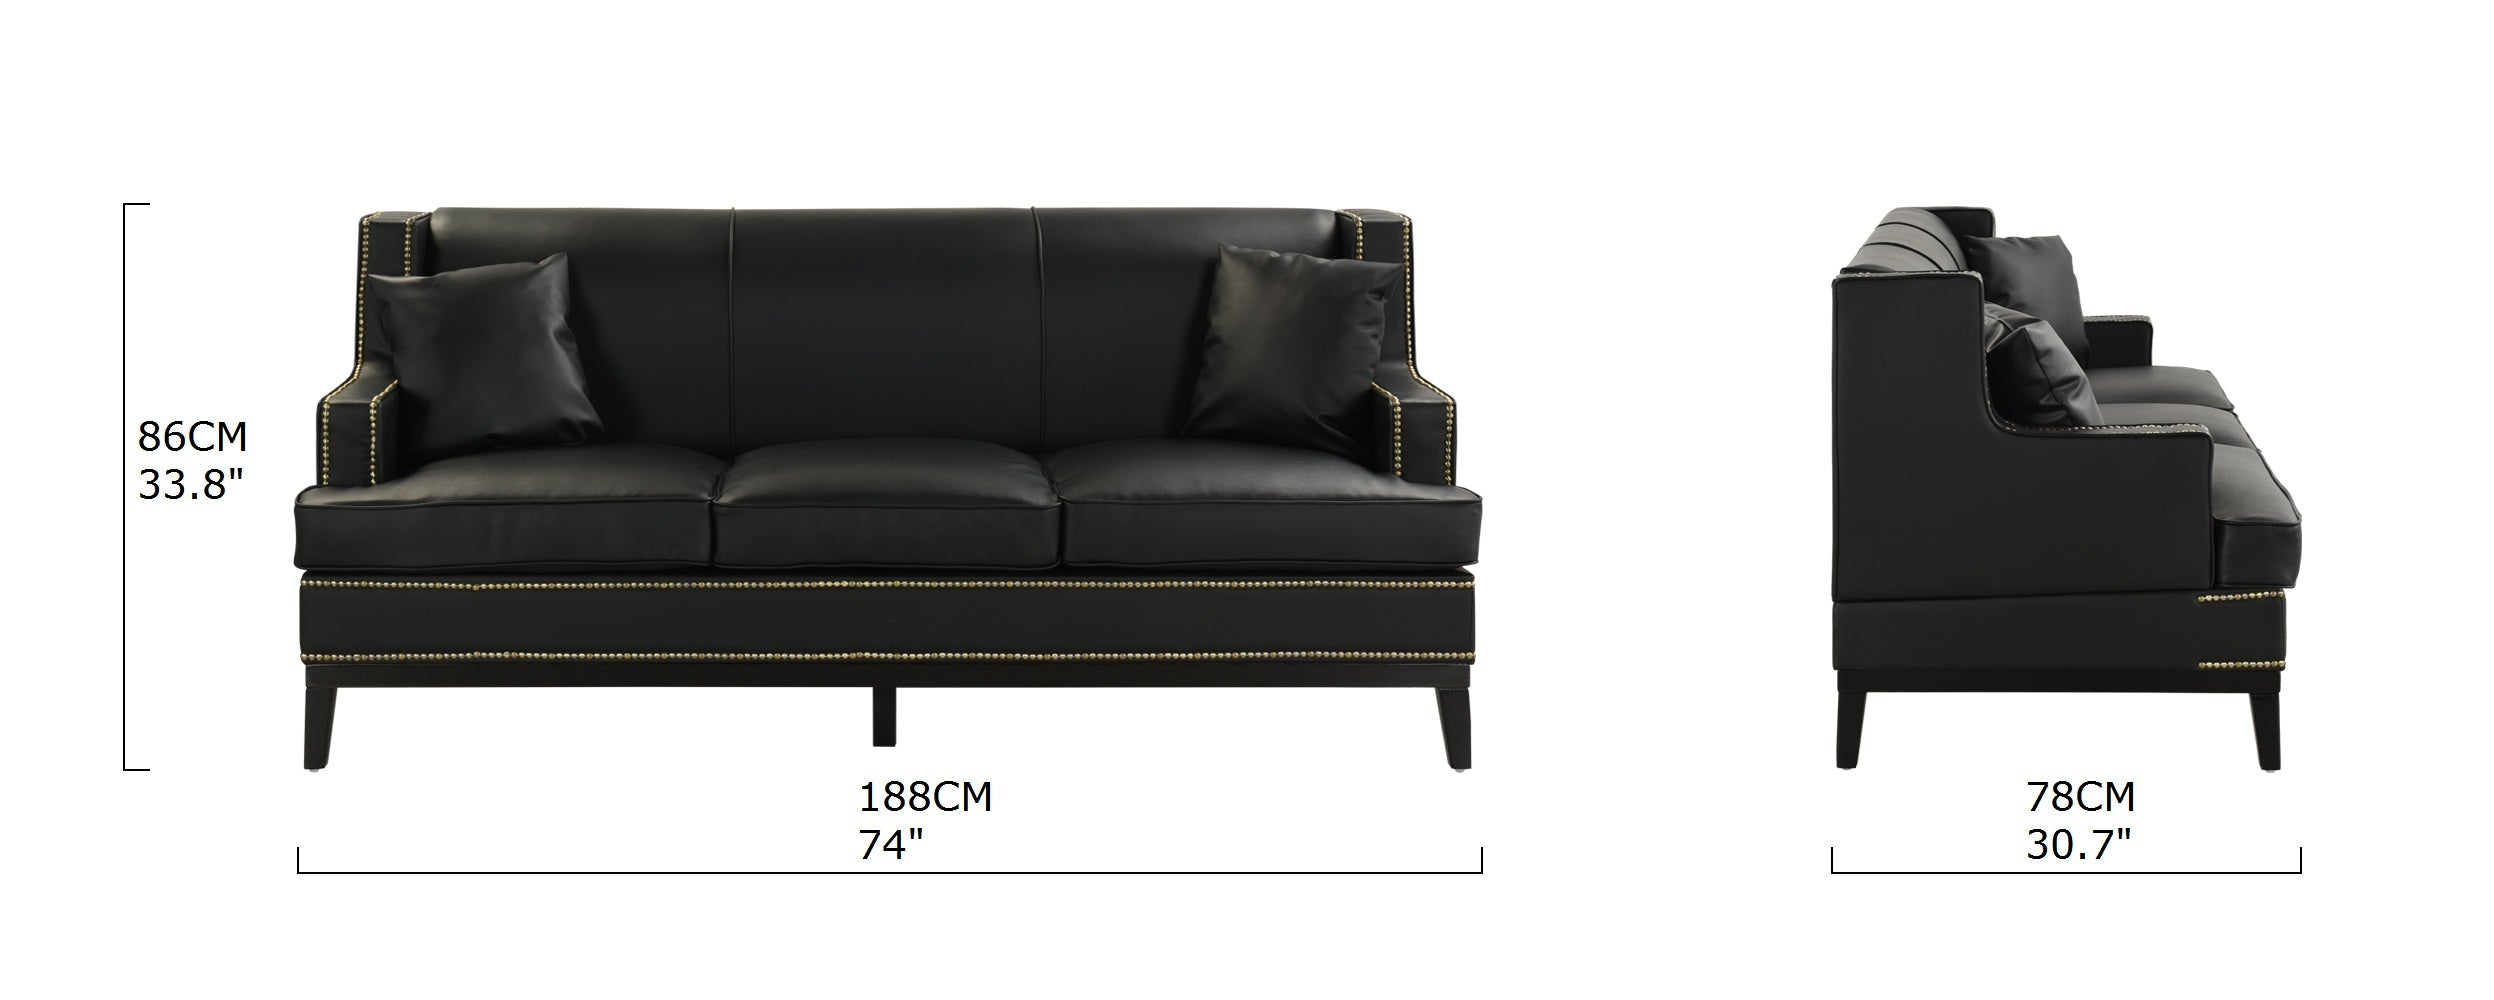 Abe Old Hollywood Nailhead Trim Bonded Leather Sofa | Sofamania.com